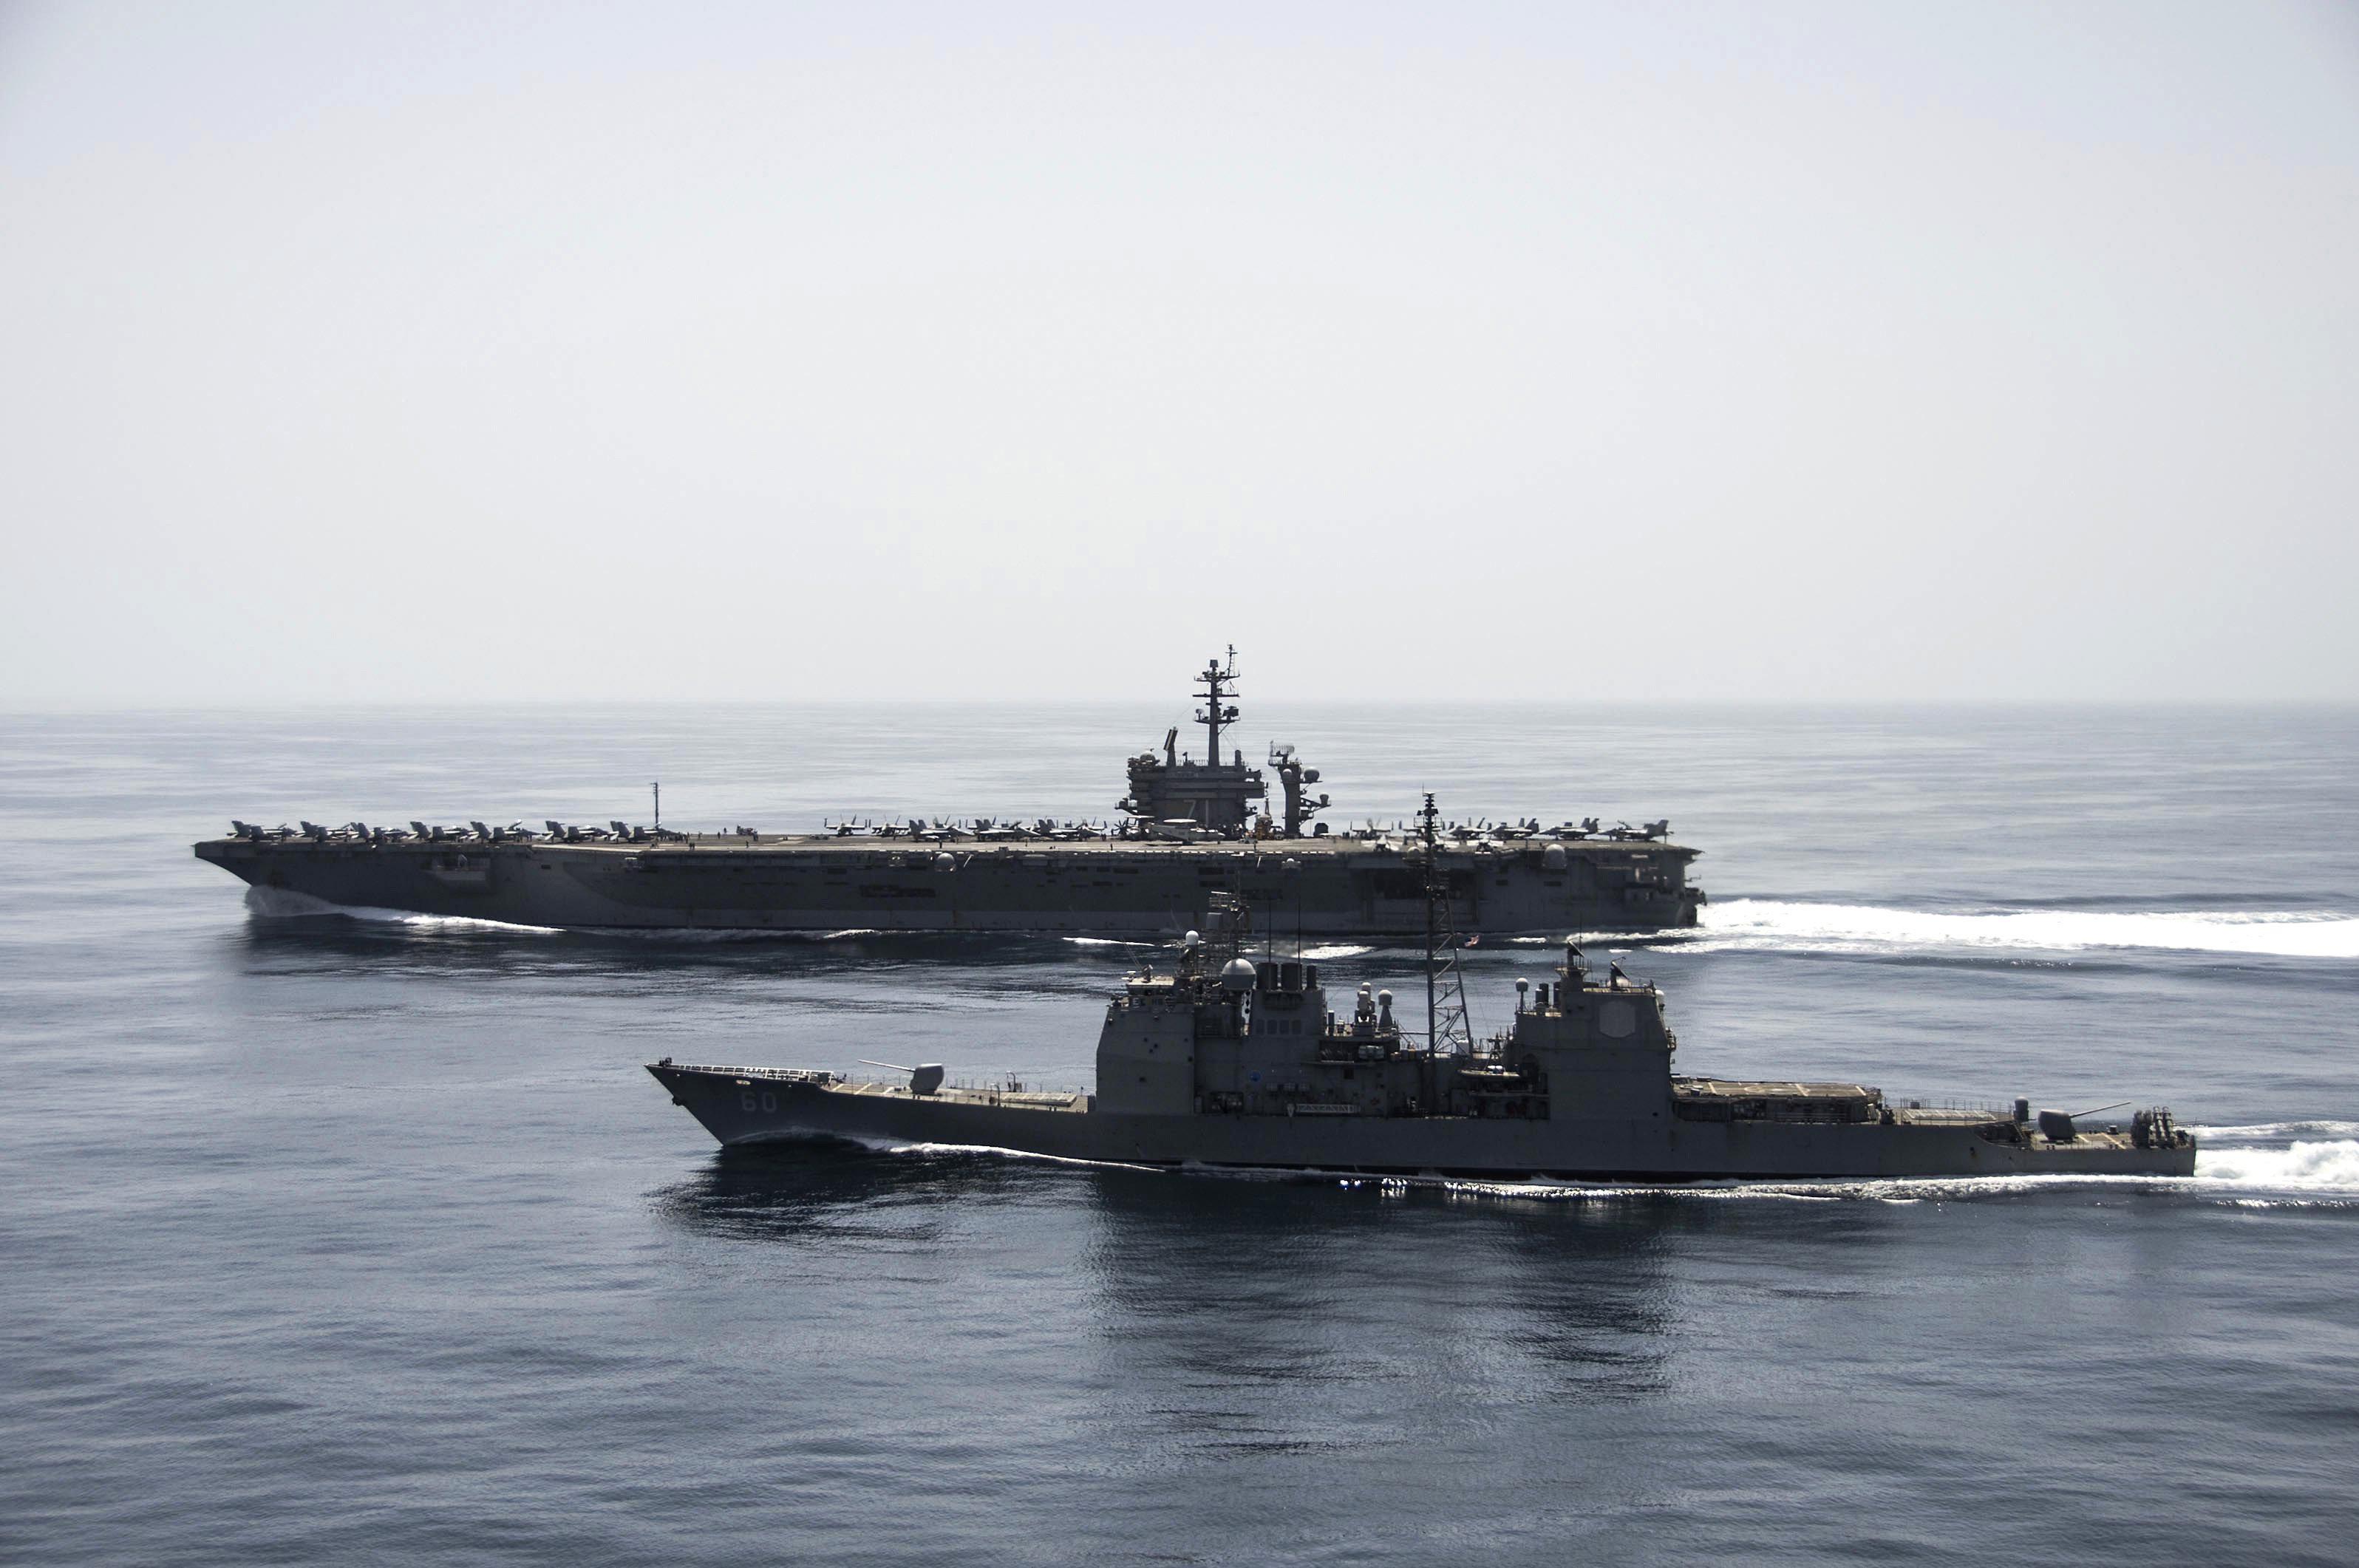 150421-N-ZF498-231 ARABIAN SEA (April 21, 2015) The aircraft carrier USS Theodore Roosevelt (CVN 71) and the guided-missile cruiser USS Normandy (CG 60) operate in the Arabian Sea conducting maritime security operations. (U.S. Navy photo by Mass Communication Specialist 3rd Class Anthony N. Hilkowski/Released)